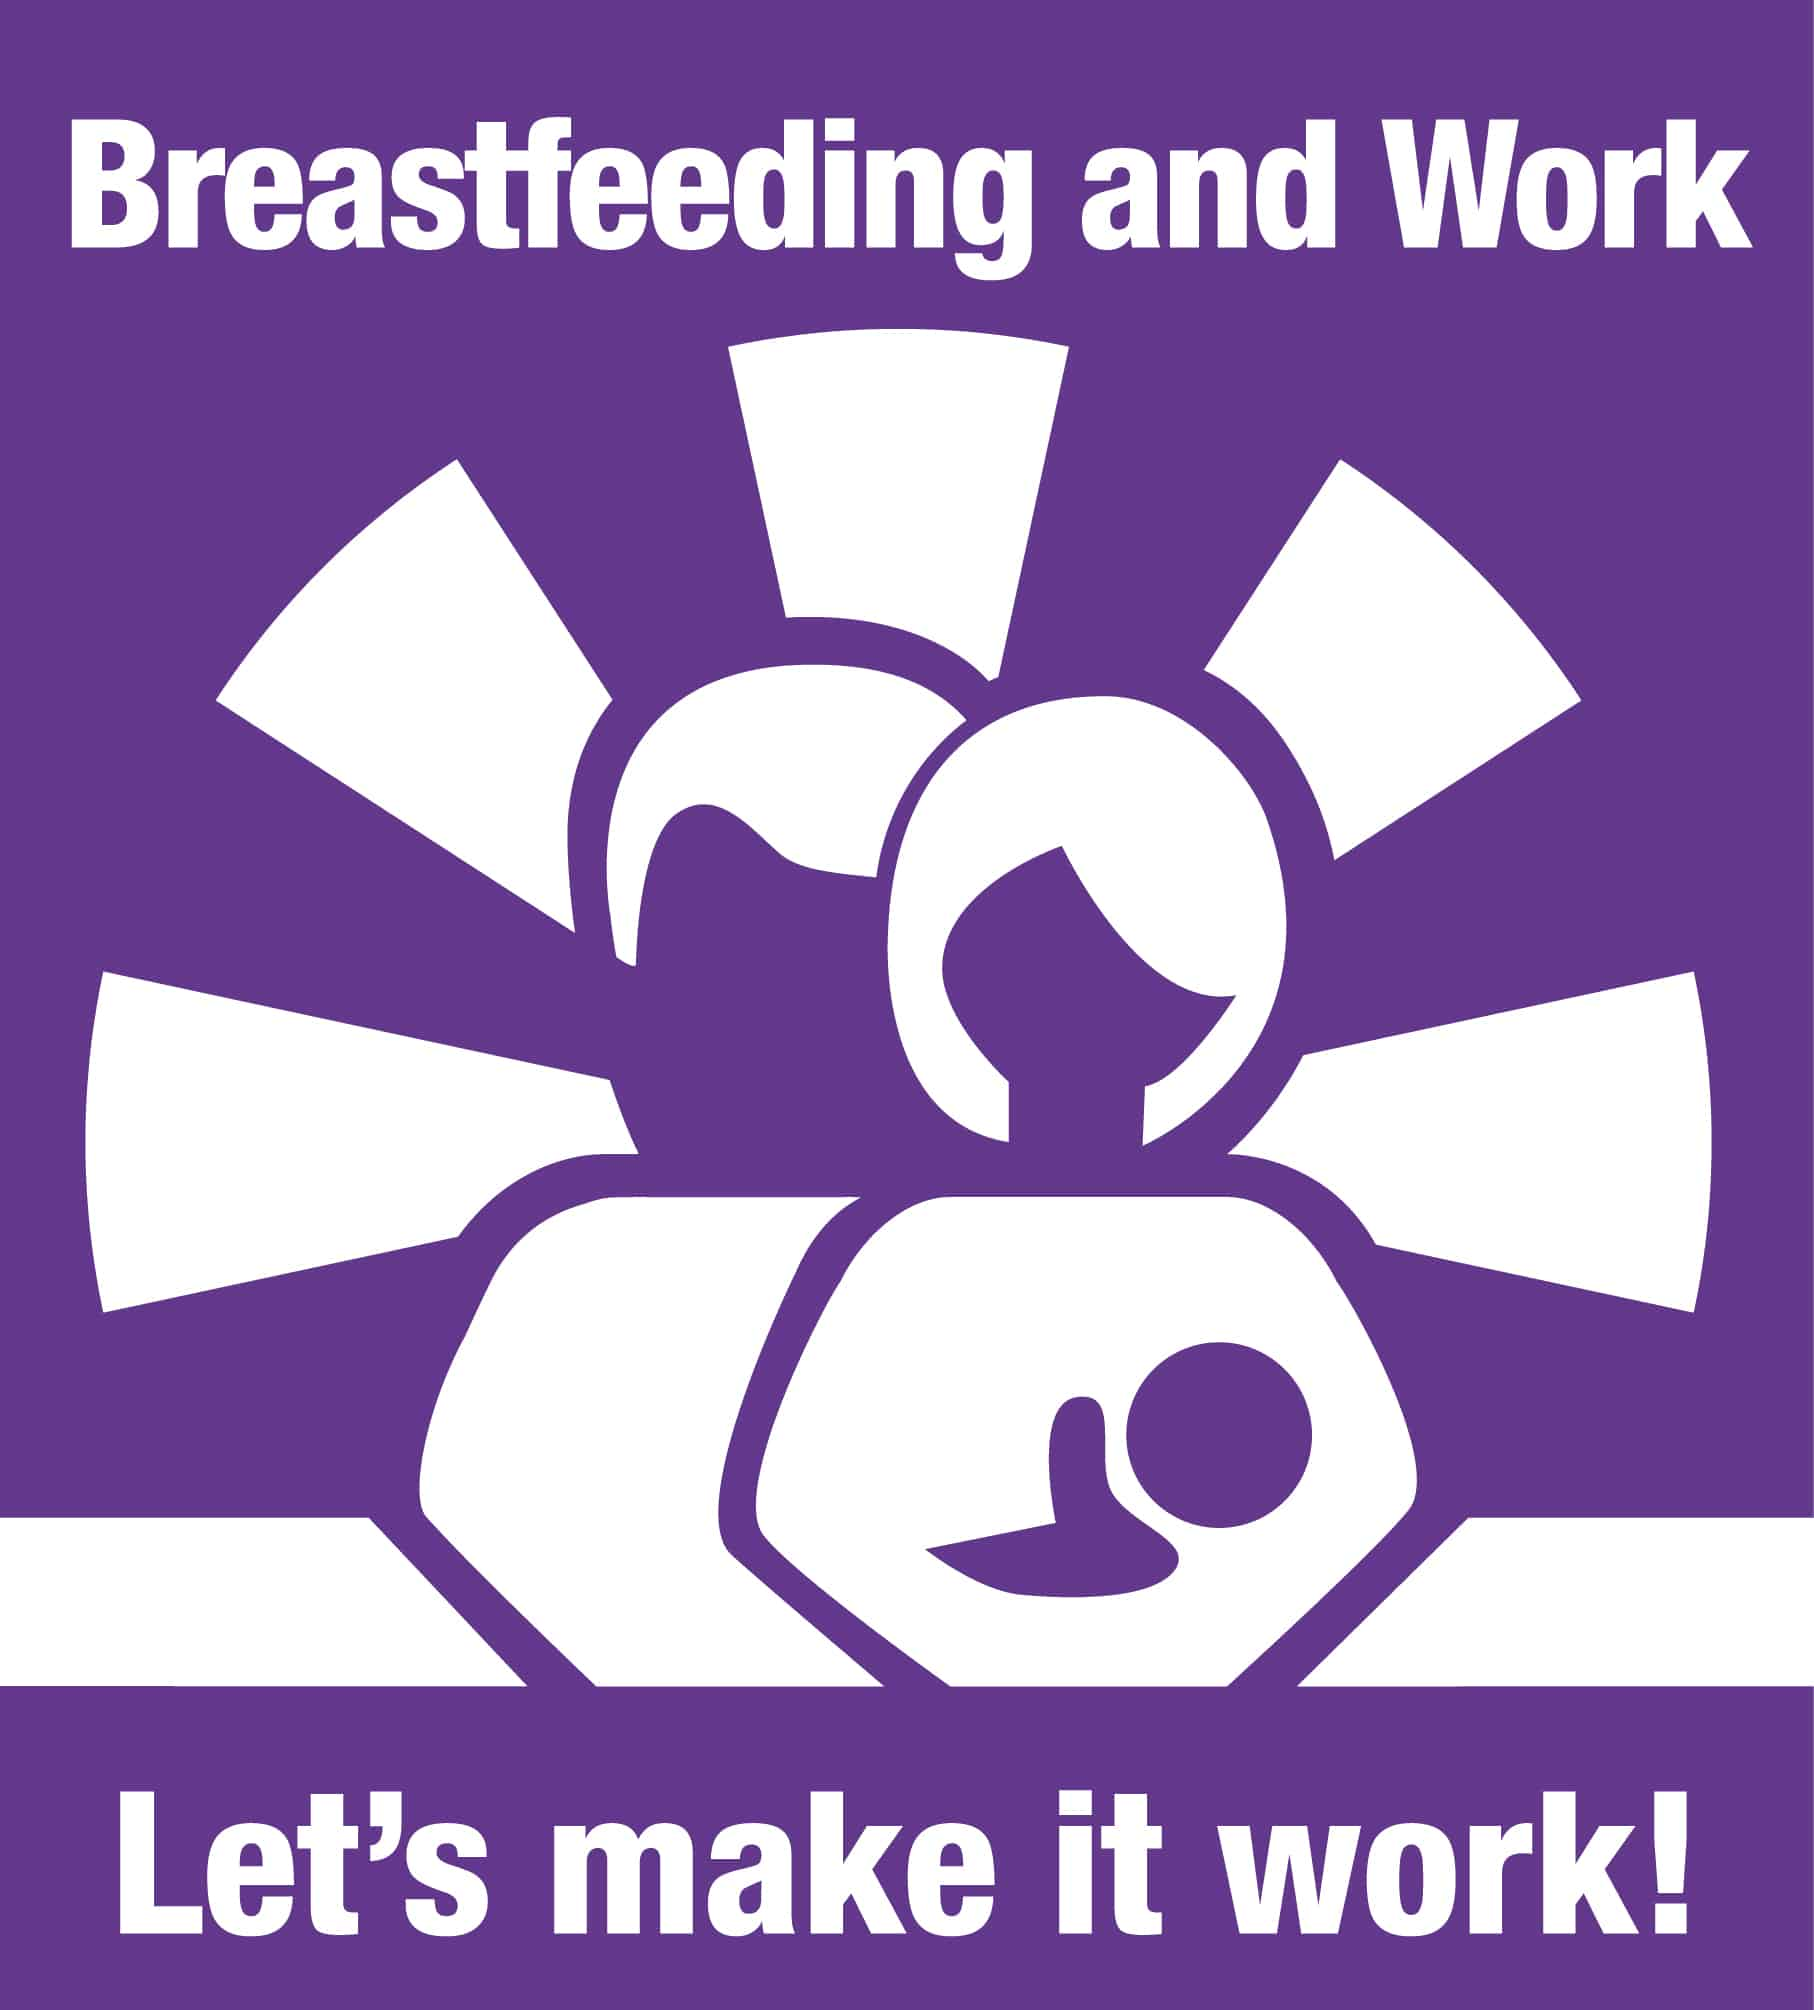 World Breastfeeding Week 2015 Is Coming